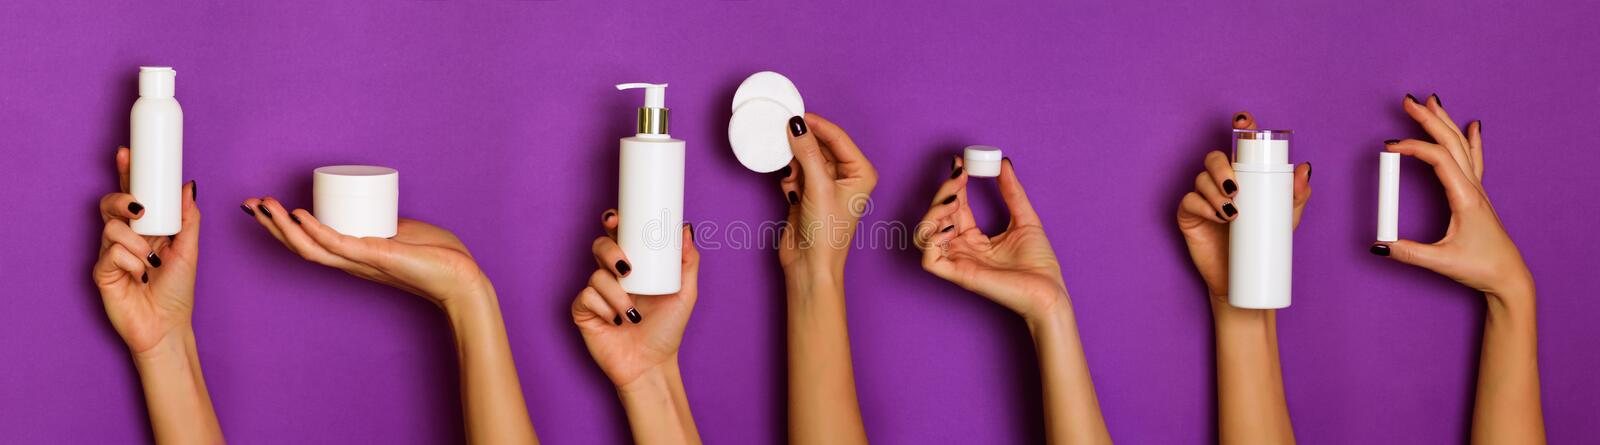 Female hands holding white cosmetics bottles - lotion, cream, serum on violet background. Banner. Skin care, pure beauty, body royalty free stock photography